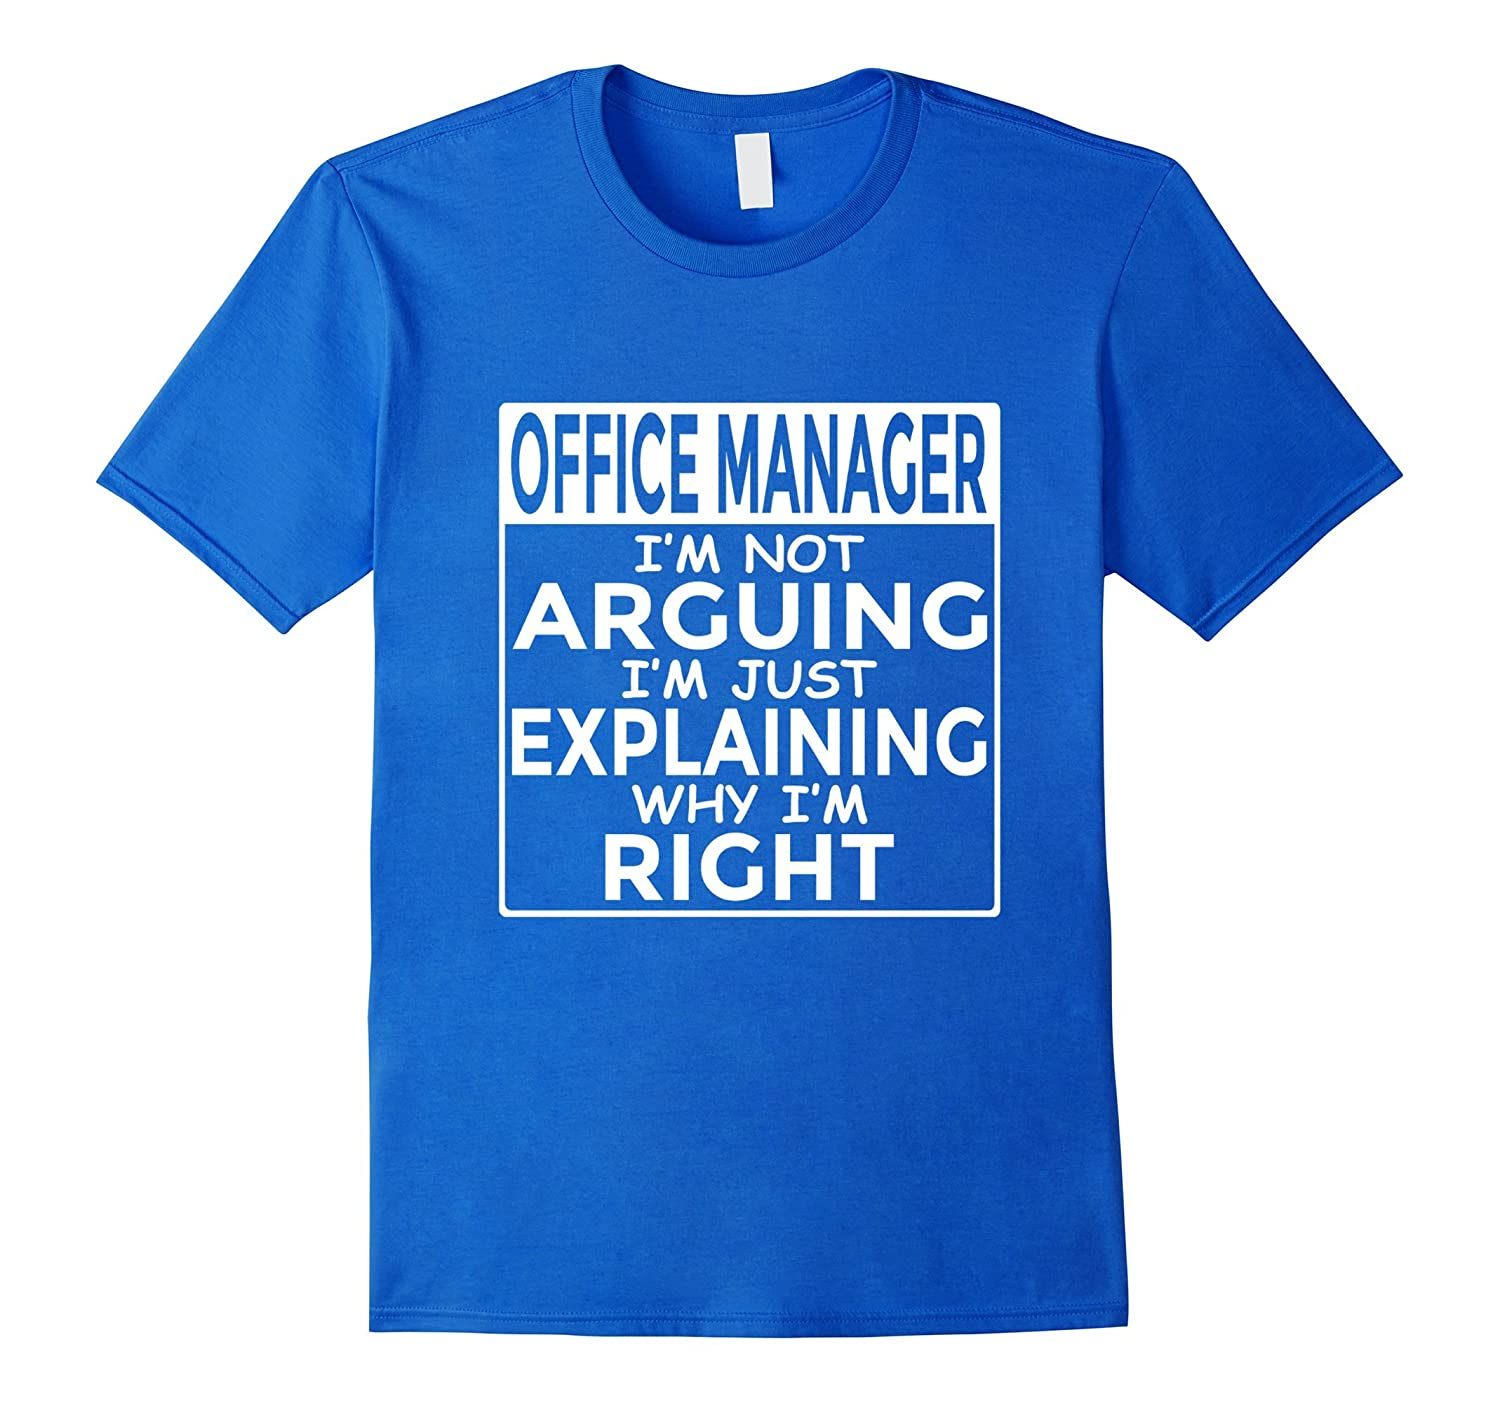 Office Manager I'm Not Arguing Just Explaining Why I'm Right-FL